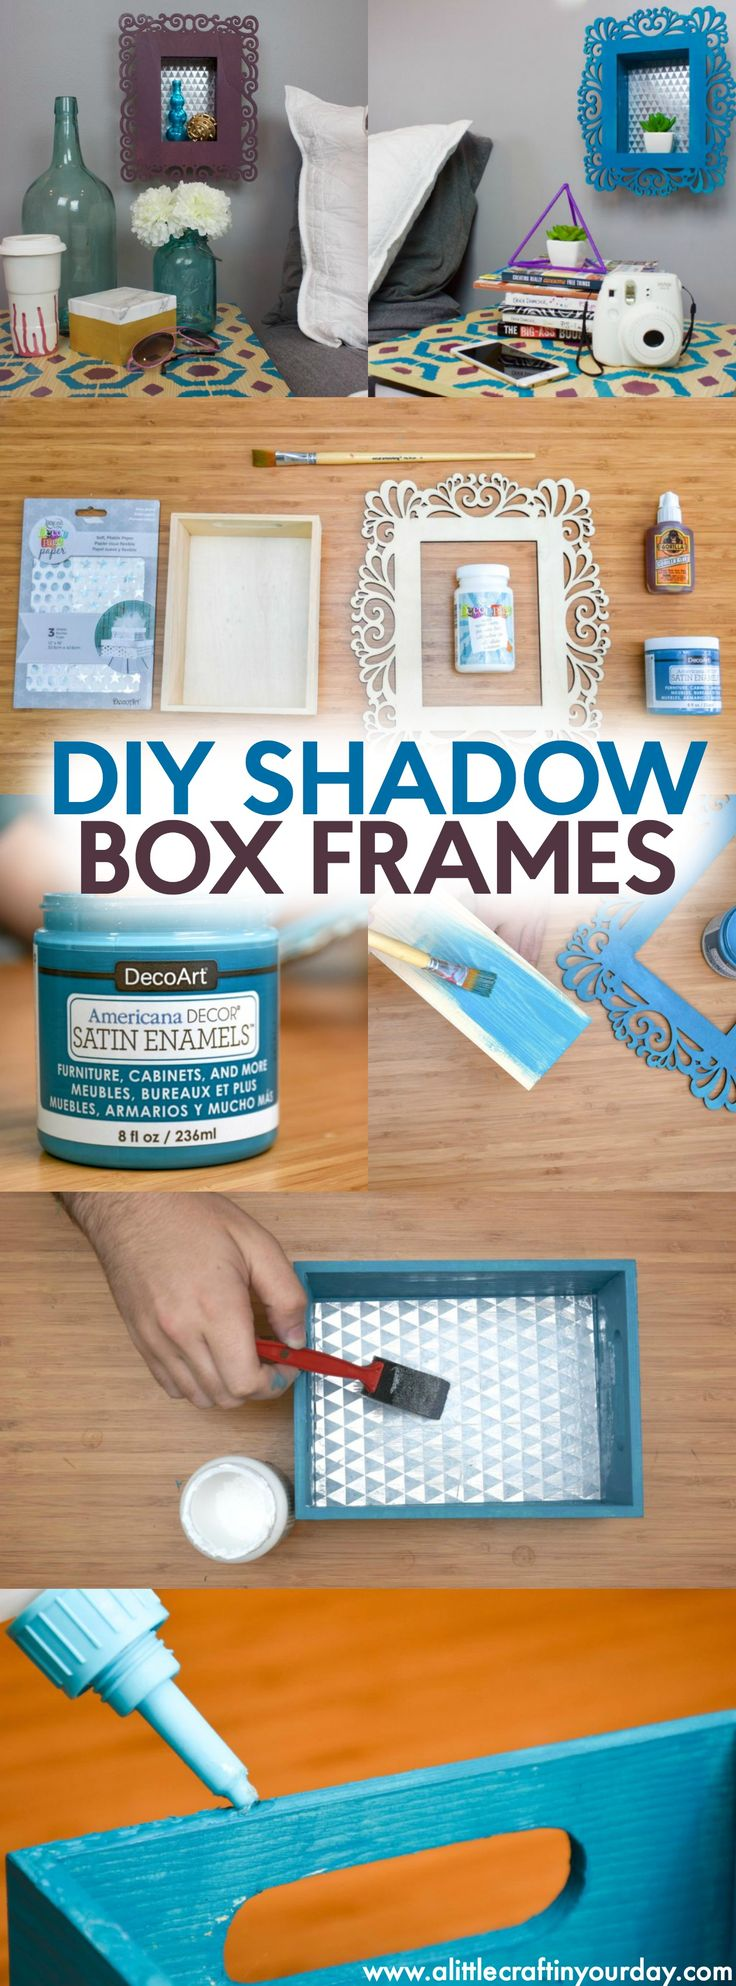 shadow box craft ideas 17 best ideas about shadow box frames on 5400